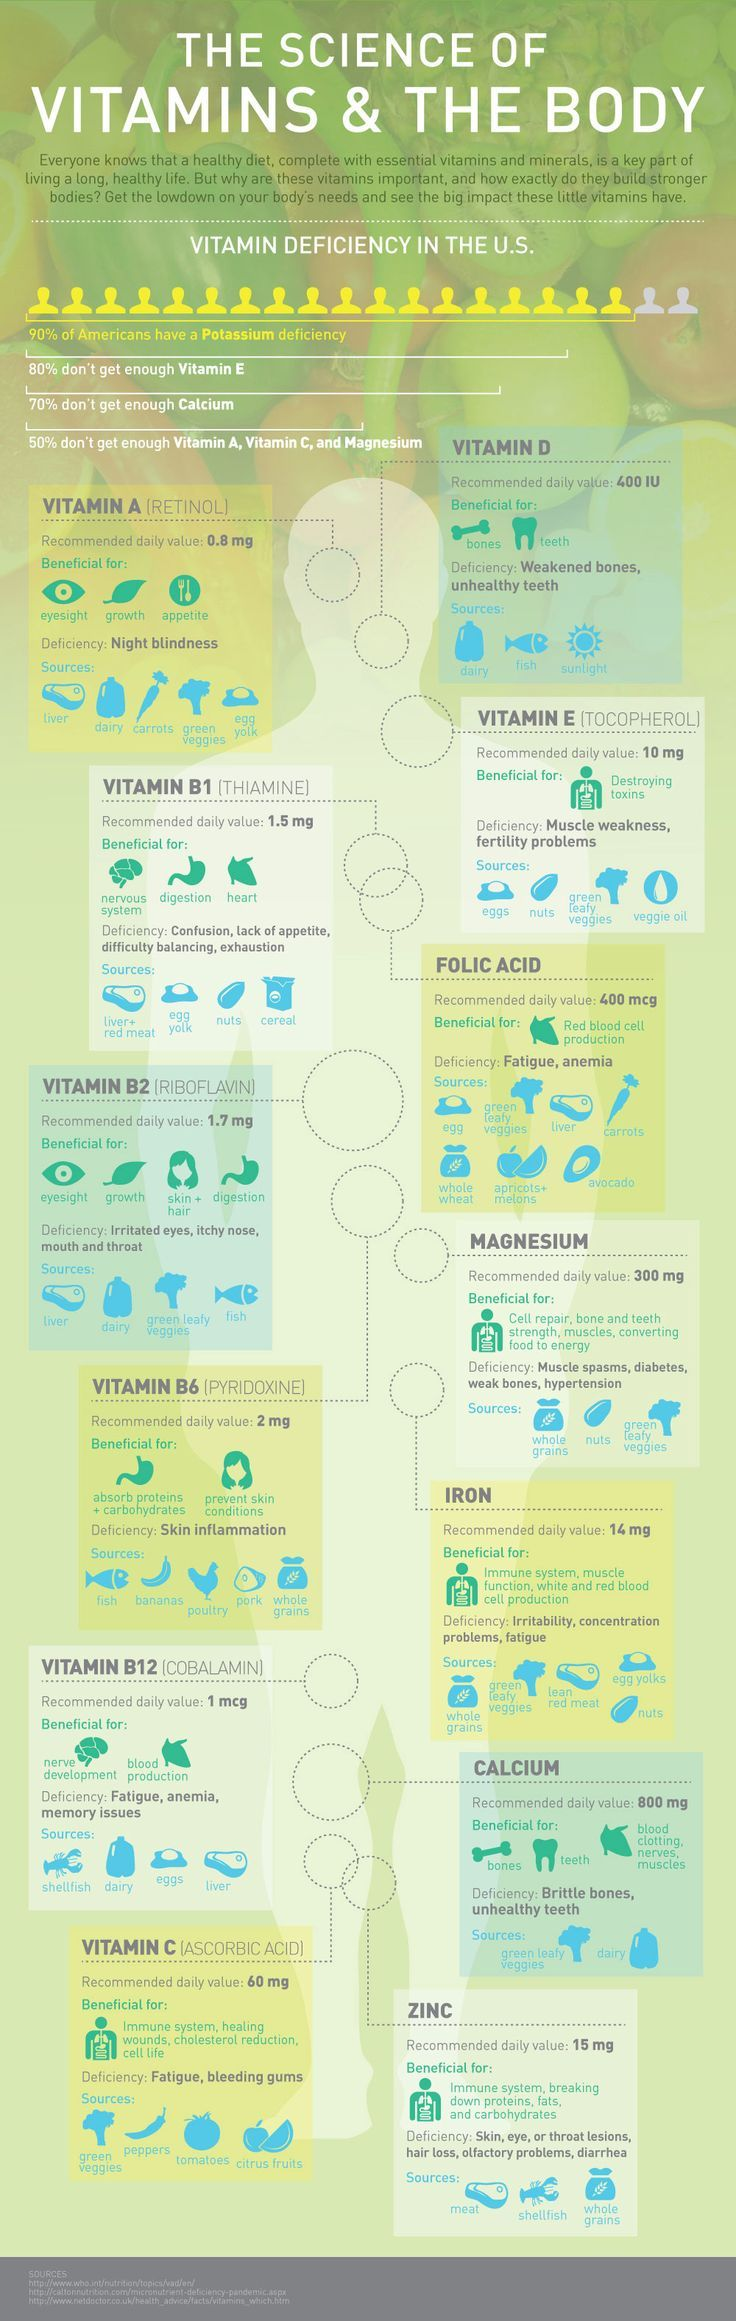 #Vitamins and the body #salud #bienestar